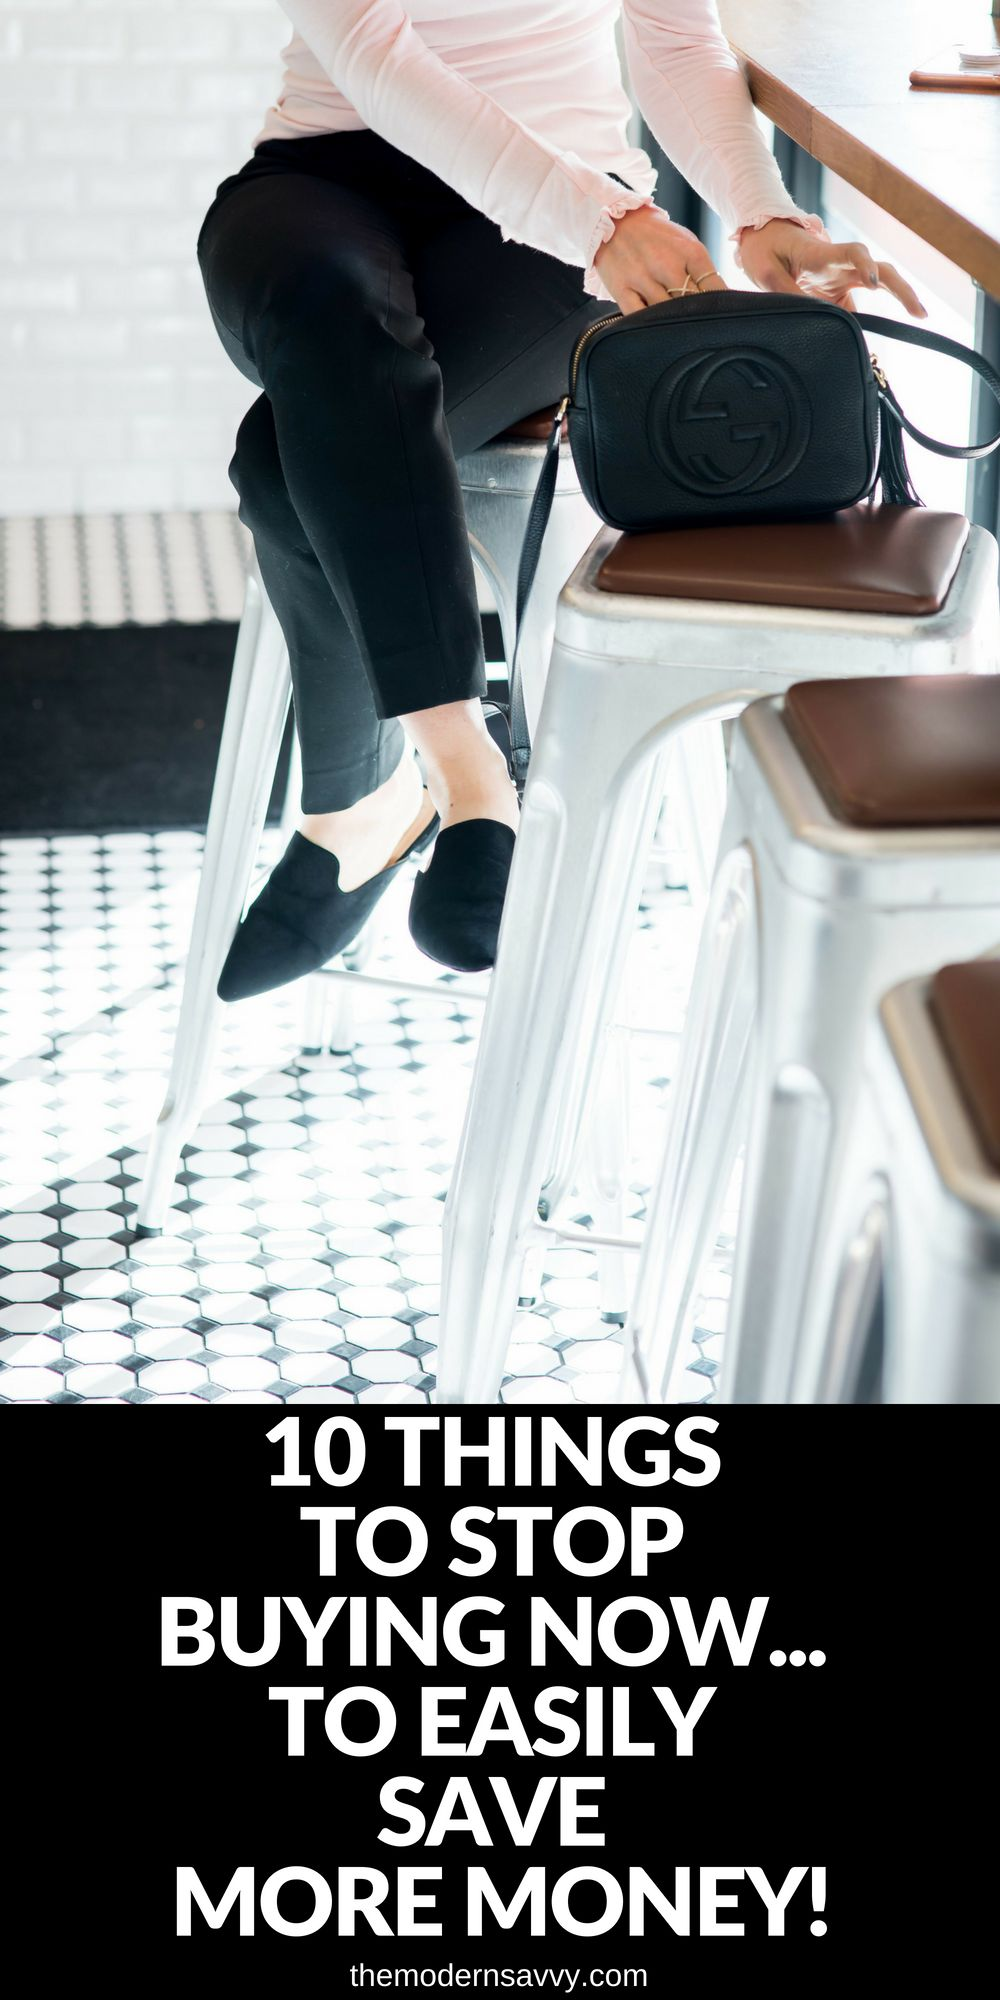 10 Things You Can Stop Buying Now... so you can easily save more money - 10 Things to Stop Buying to Save Money featured by popular Florida lifestyle blogger, The Modern Savvy